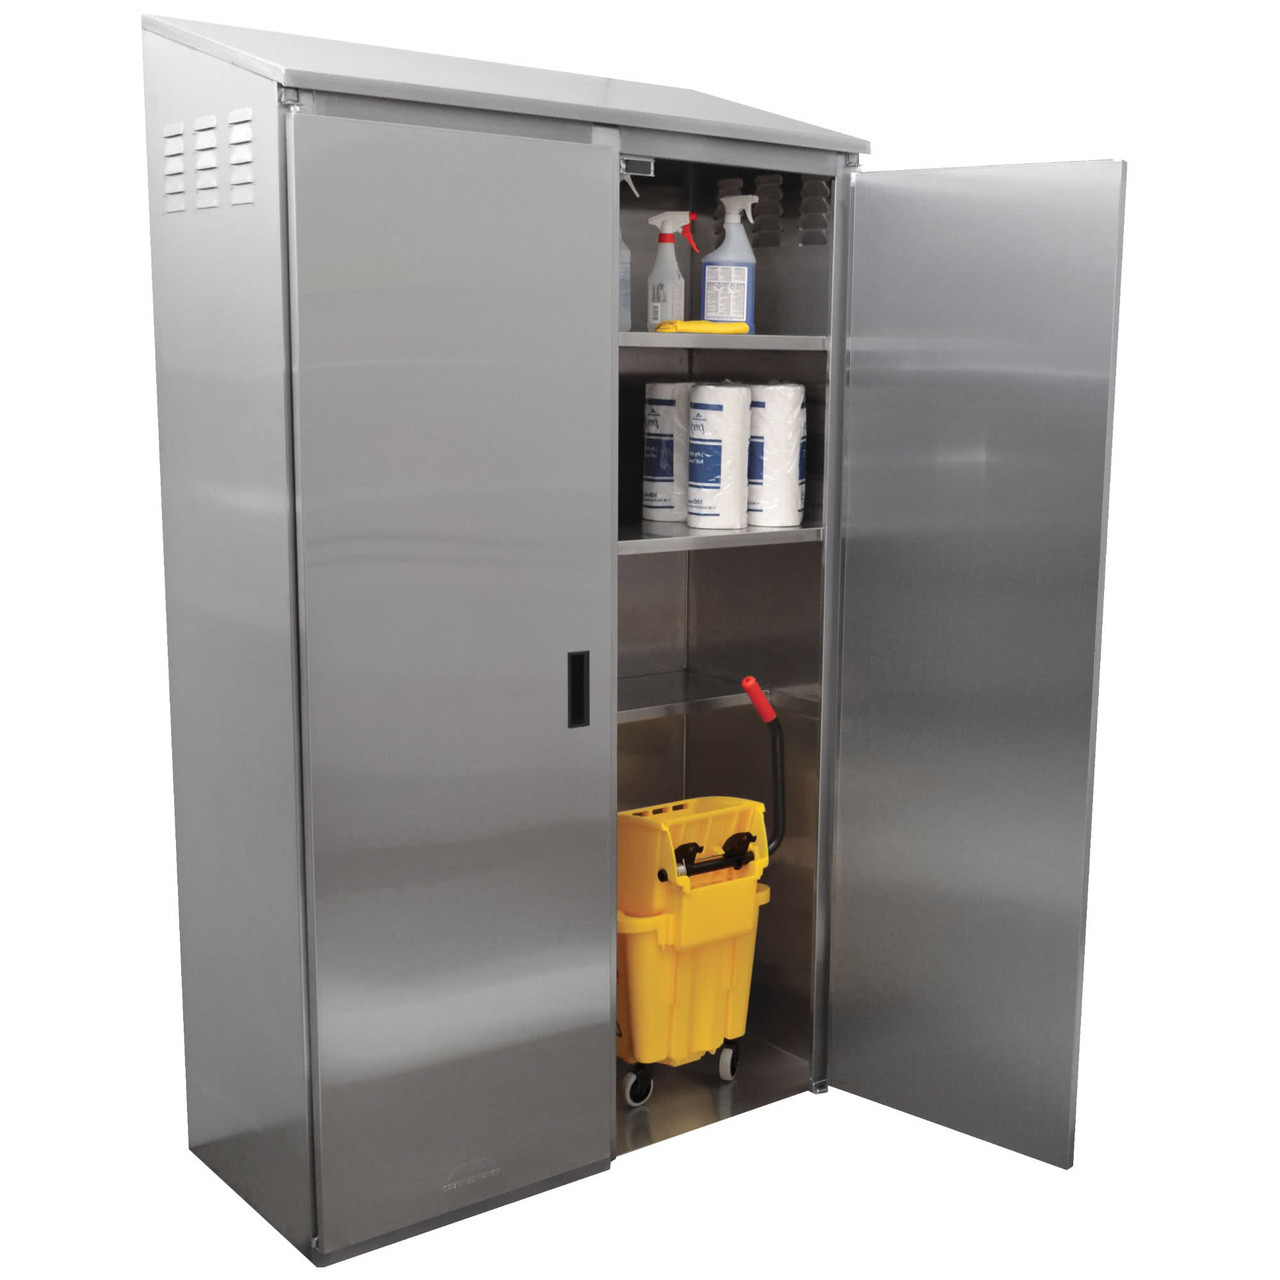 Stainless Steel Kitchen Cabinets Price: Stainless Steel Double Width Mop Sink Cabinet With Right